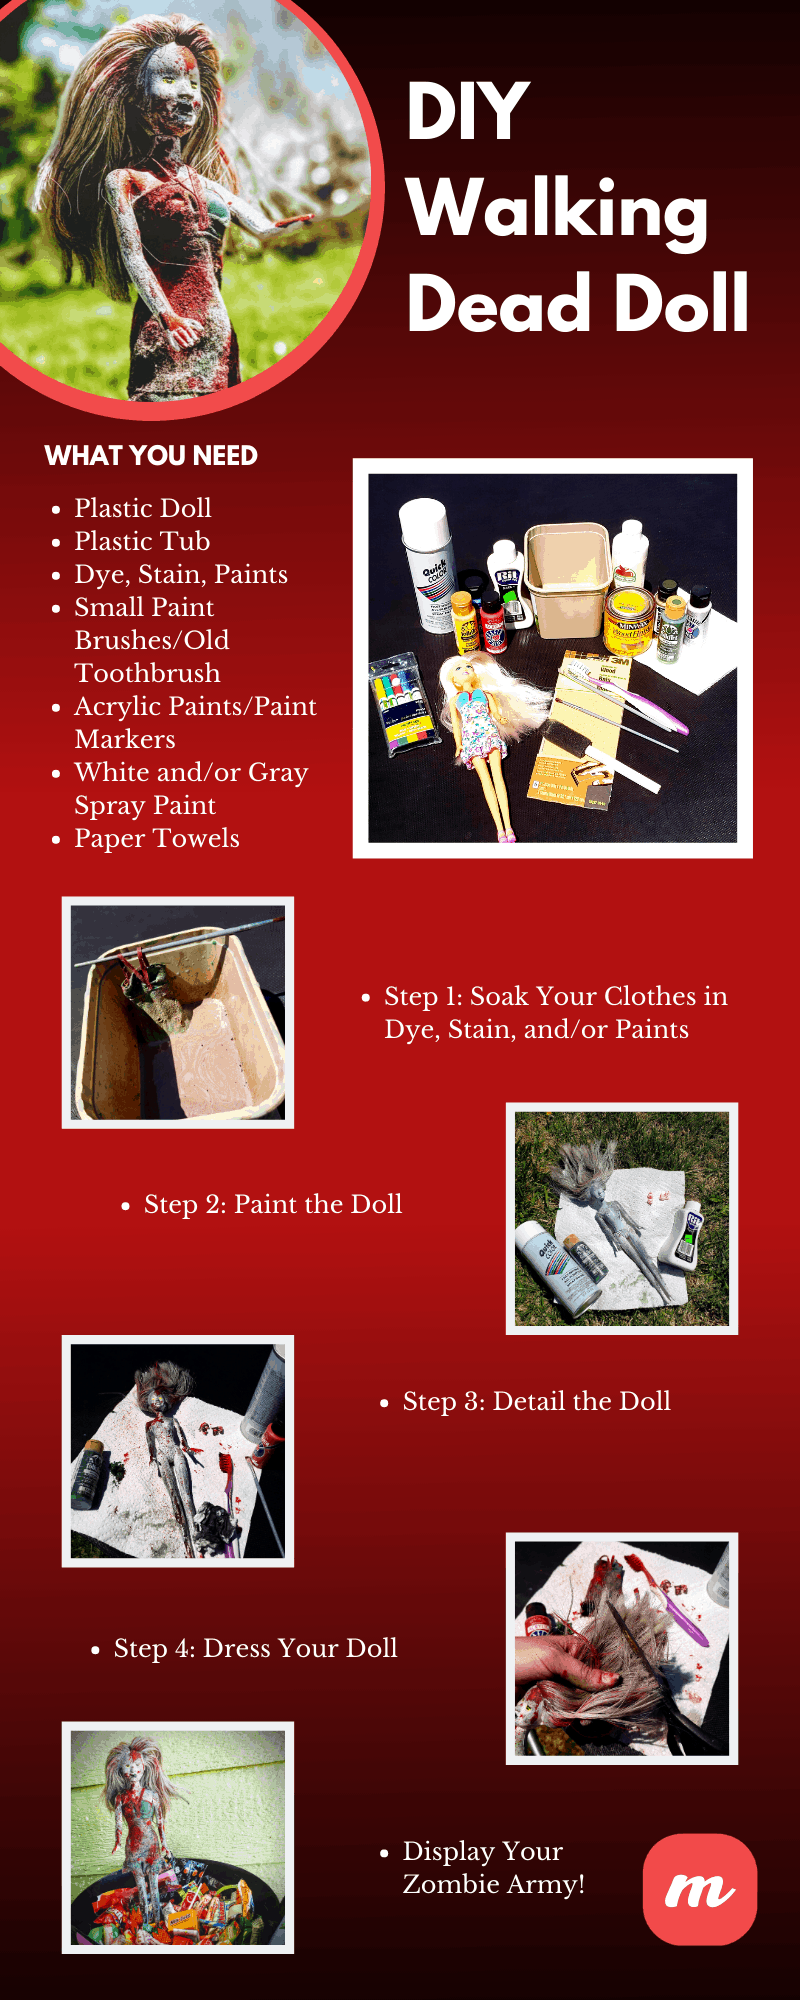 DIY Walking Dead Doll - Infographic